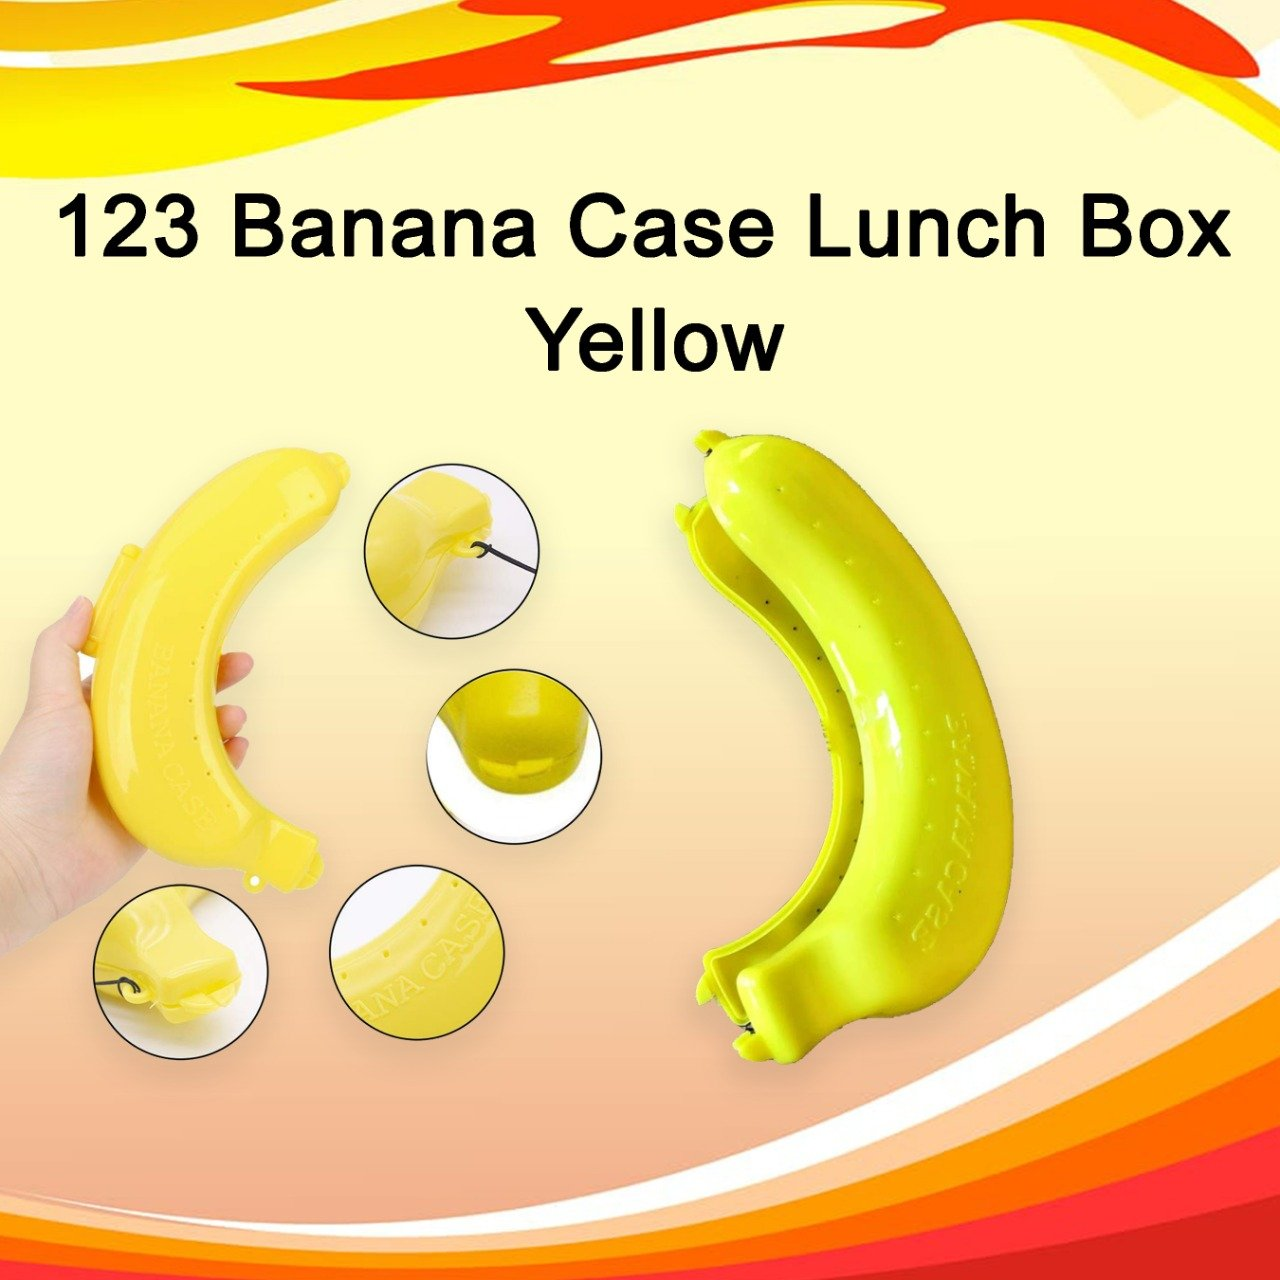 123 Banana Case Lunch Box Yellow